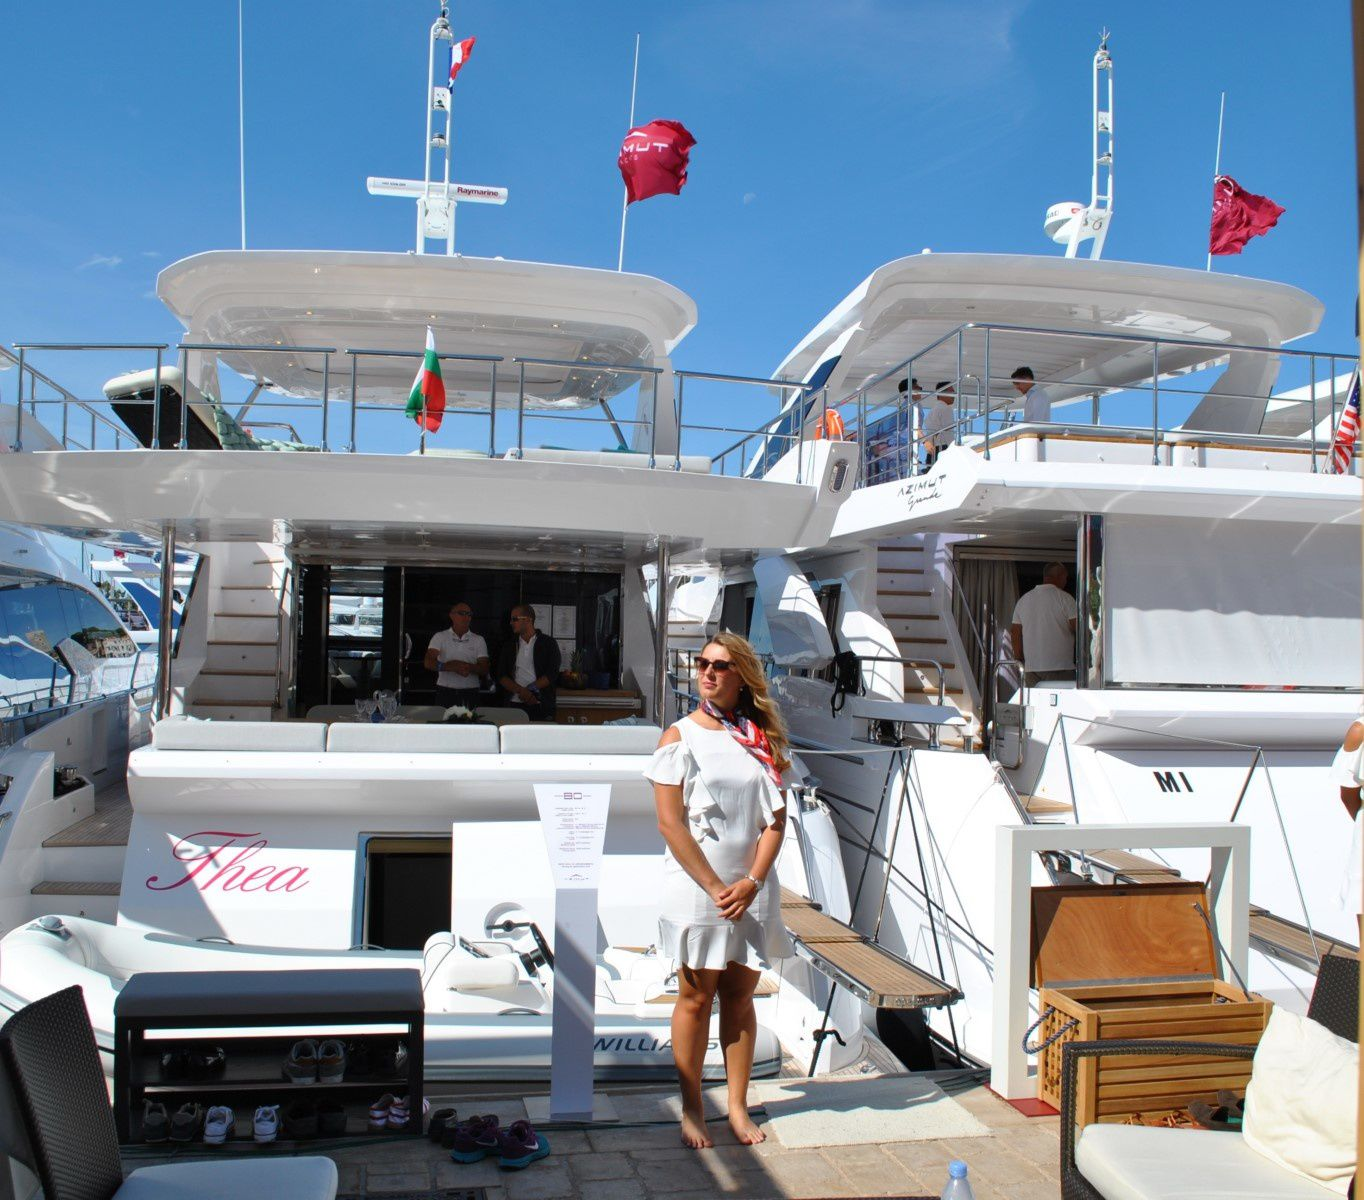 Salon Nautique Cannes Cannes Yachting Festival 2017 Royal Monaco Riviera Issn 2057 5076